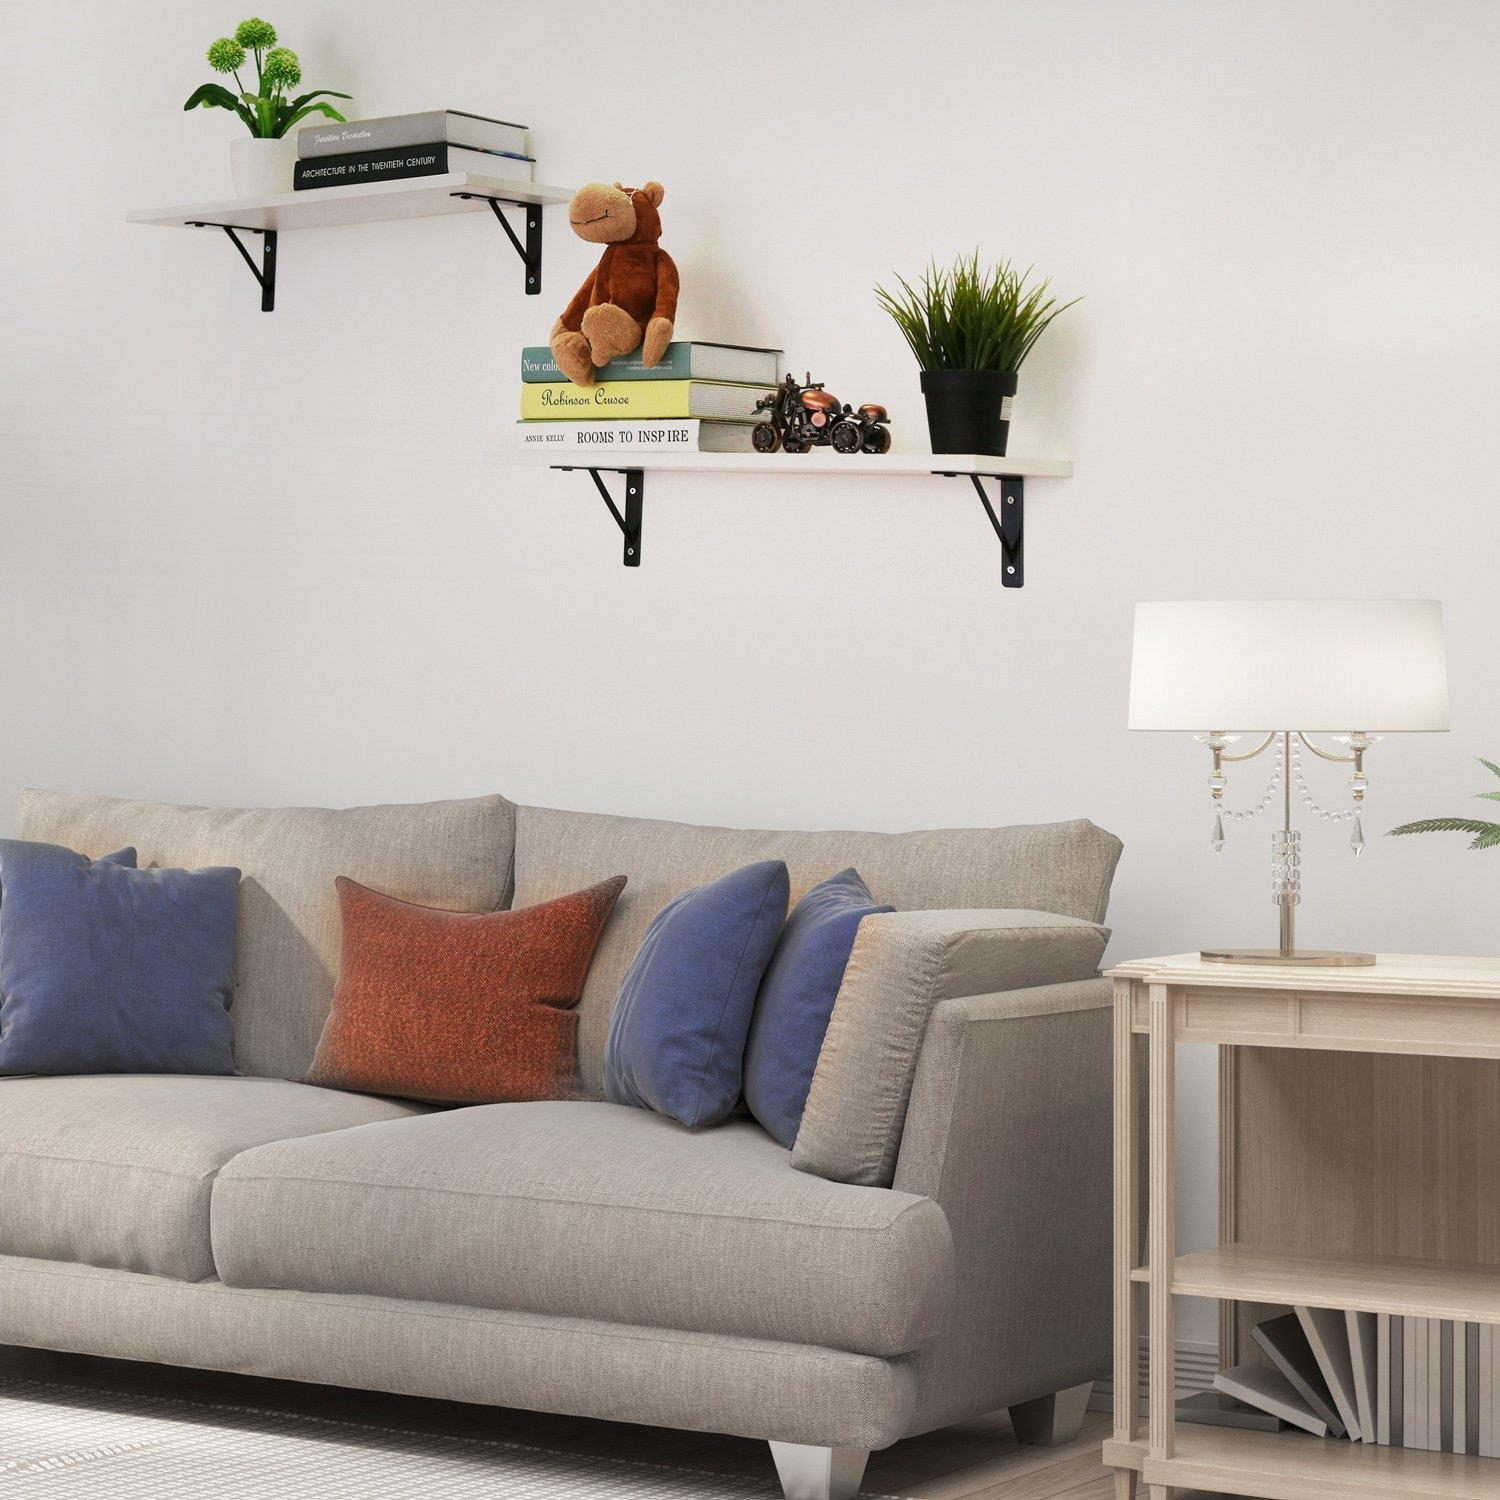 Details About 2 Pcs Display Ledge Shelf Home Decoration Floating Shelves Wall Mounted White